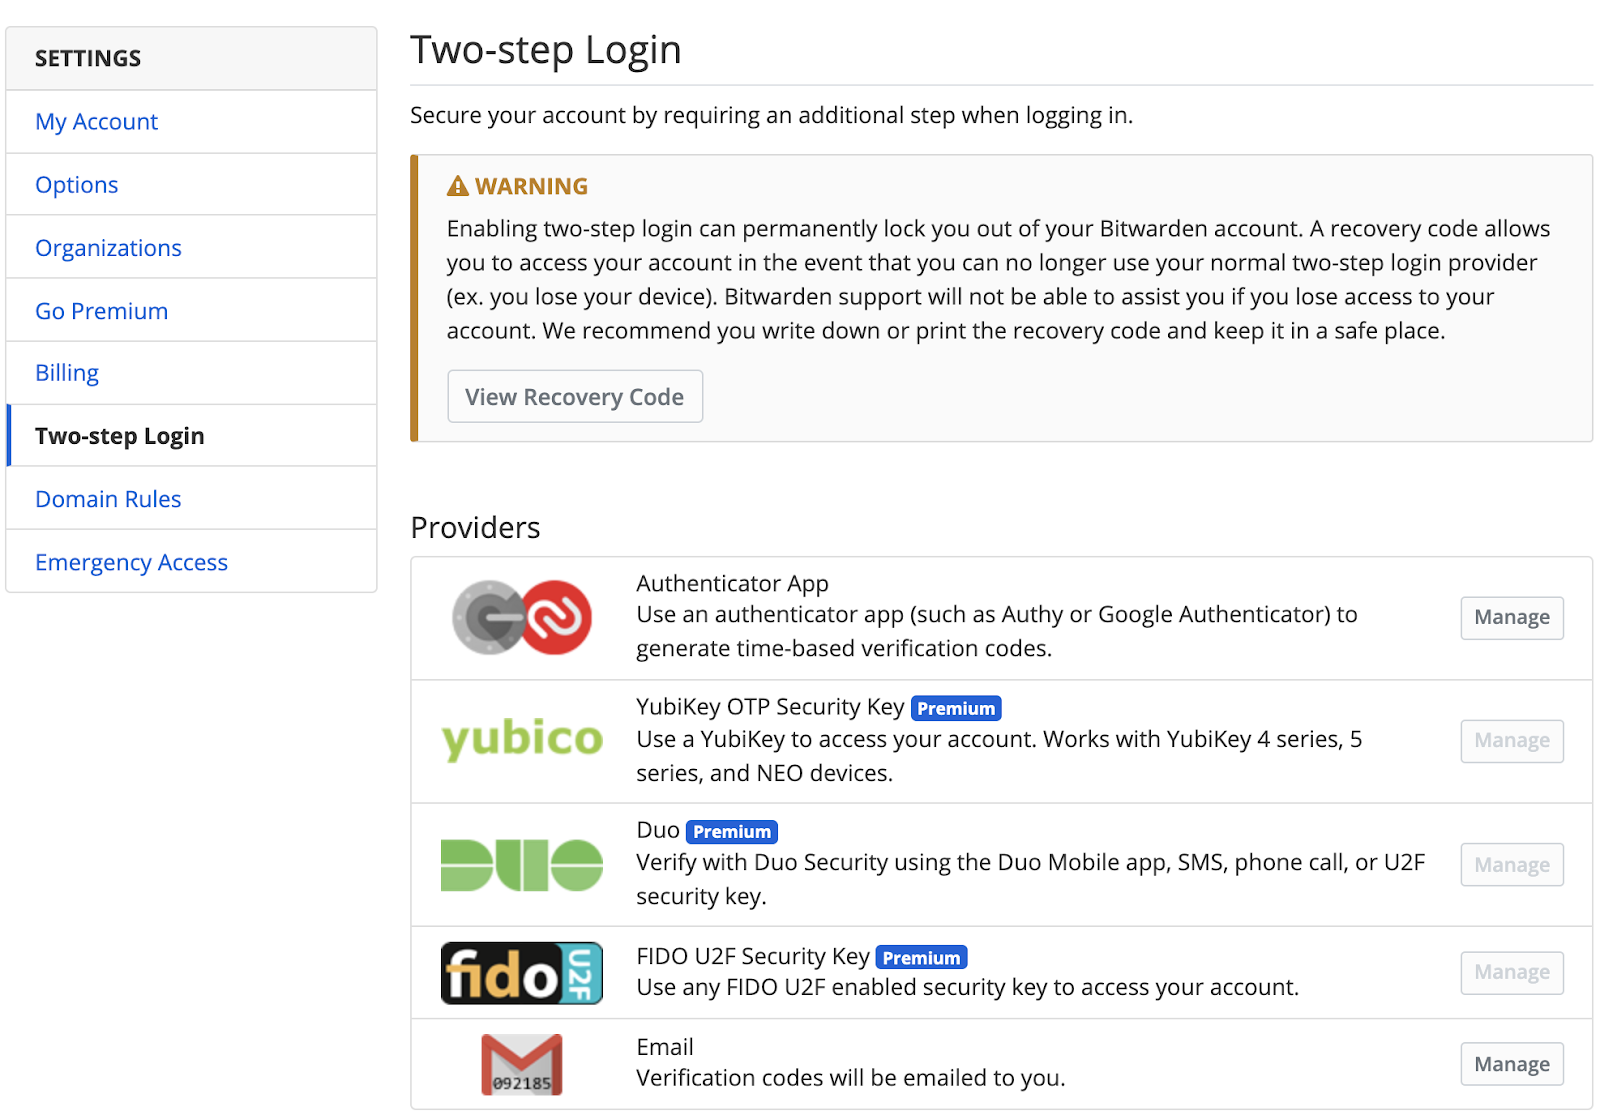 Screenshot of Bitwarden's two-step login settings page, including multiple options for authentication tools.